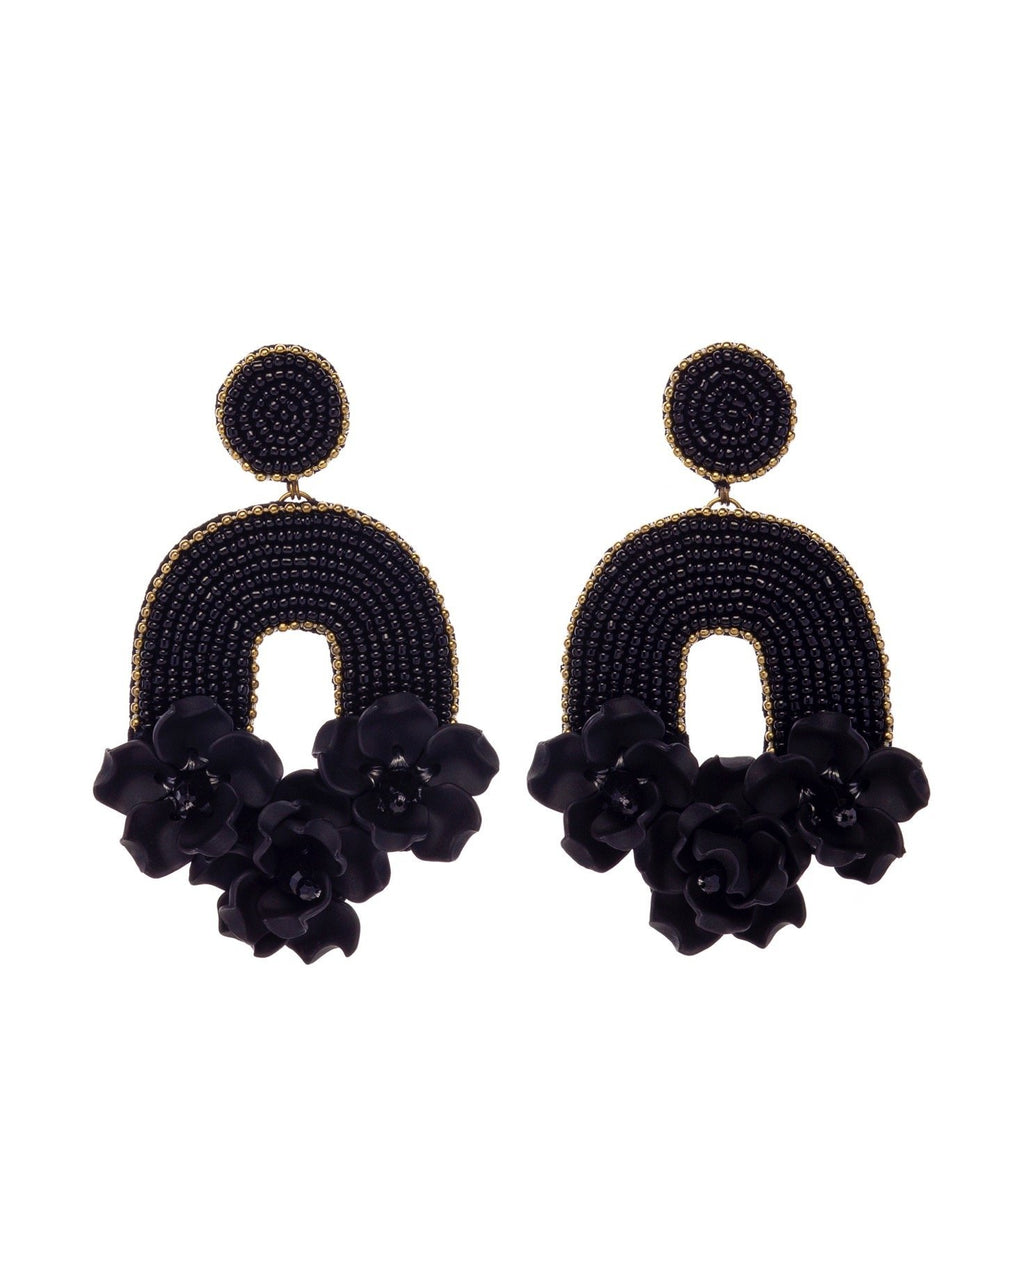 Flora Belle Earrings - Black